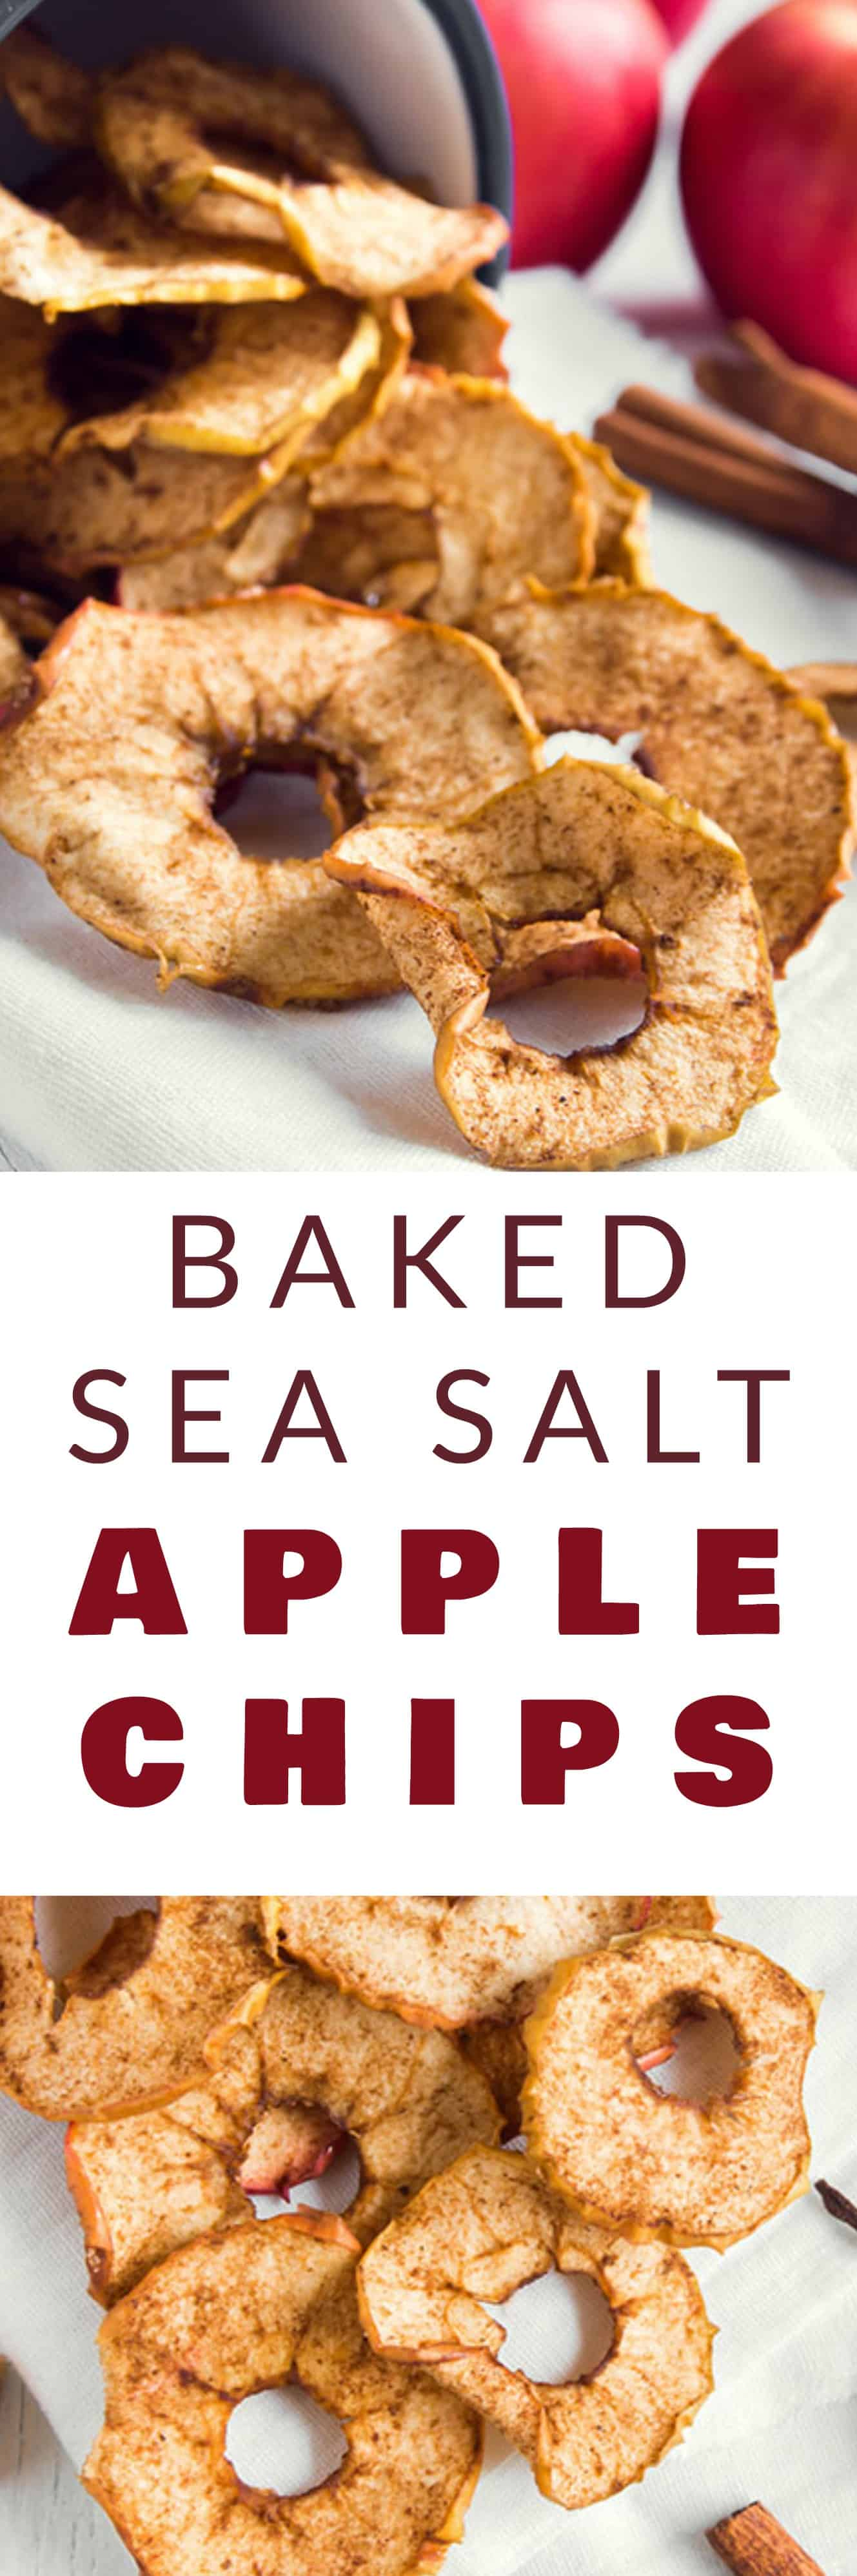 A crispyApple Chips recipe with sea salt that is healthy and easy to make! We worry about gaining weight with all those chips we consume while sitting in front of the TV! These homemade baked apple chips are healthysnacks to replace your favorite bag of potato chips!